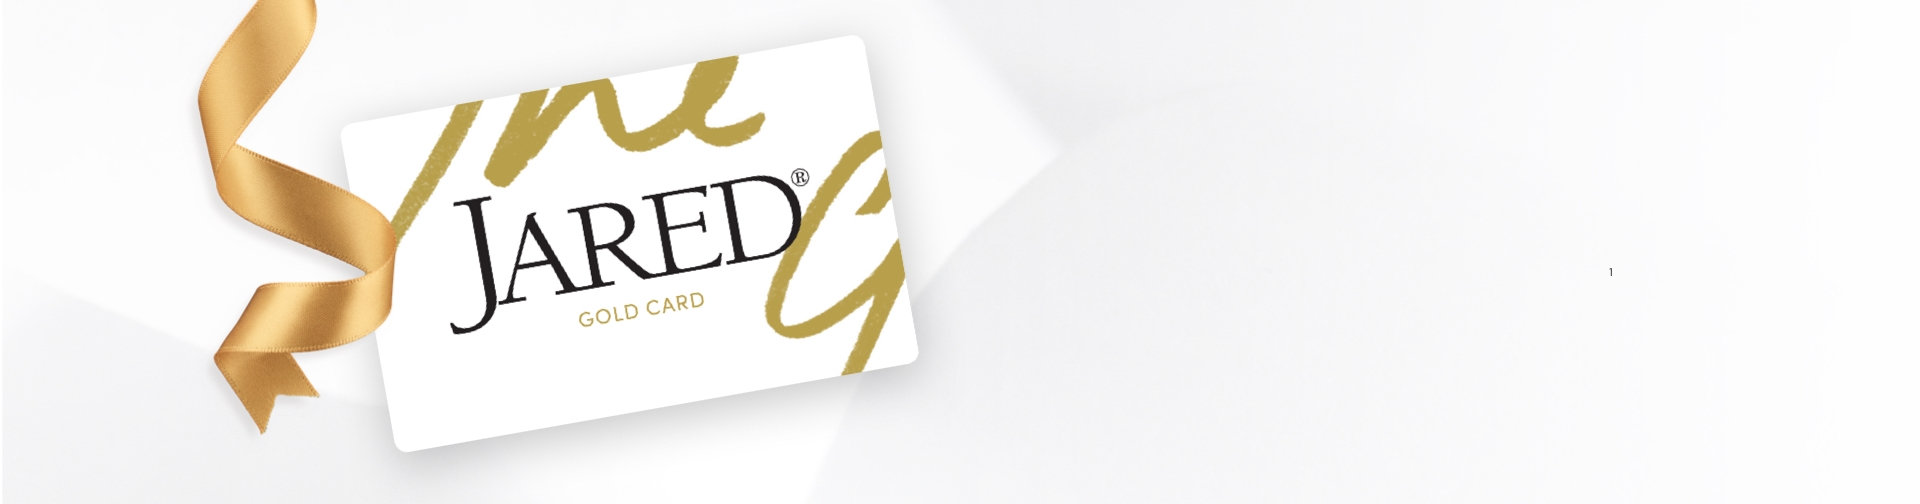 Jared Gold Credit Card on a grey background and a gold ribbon.